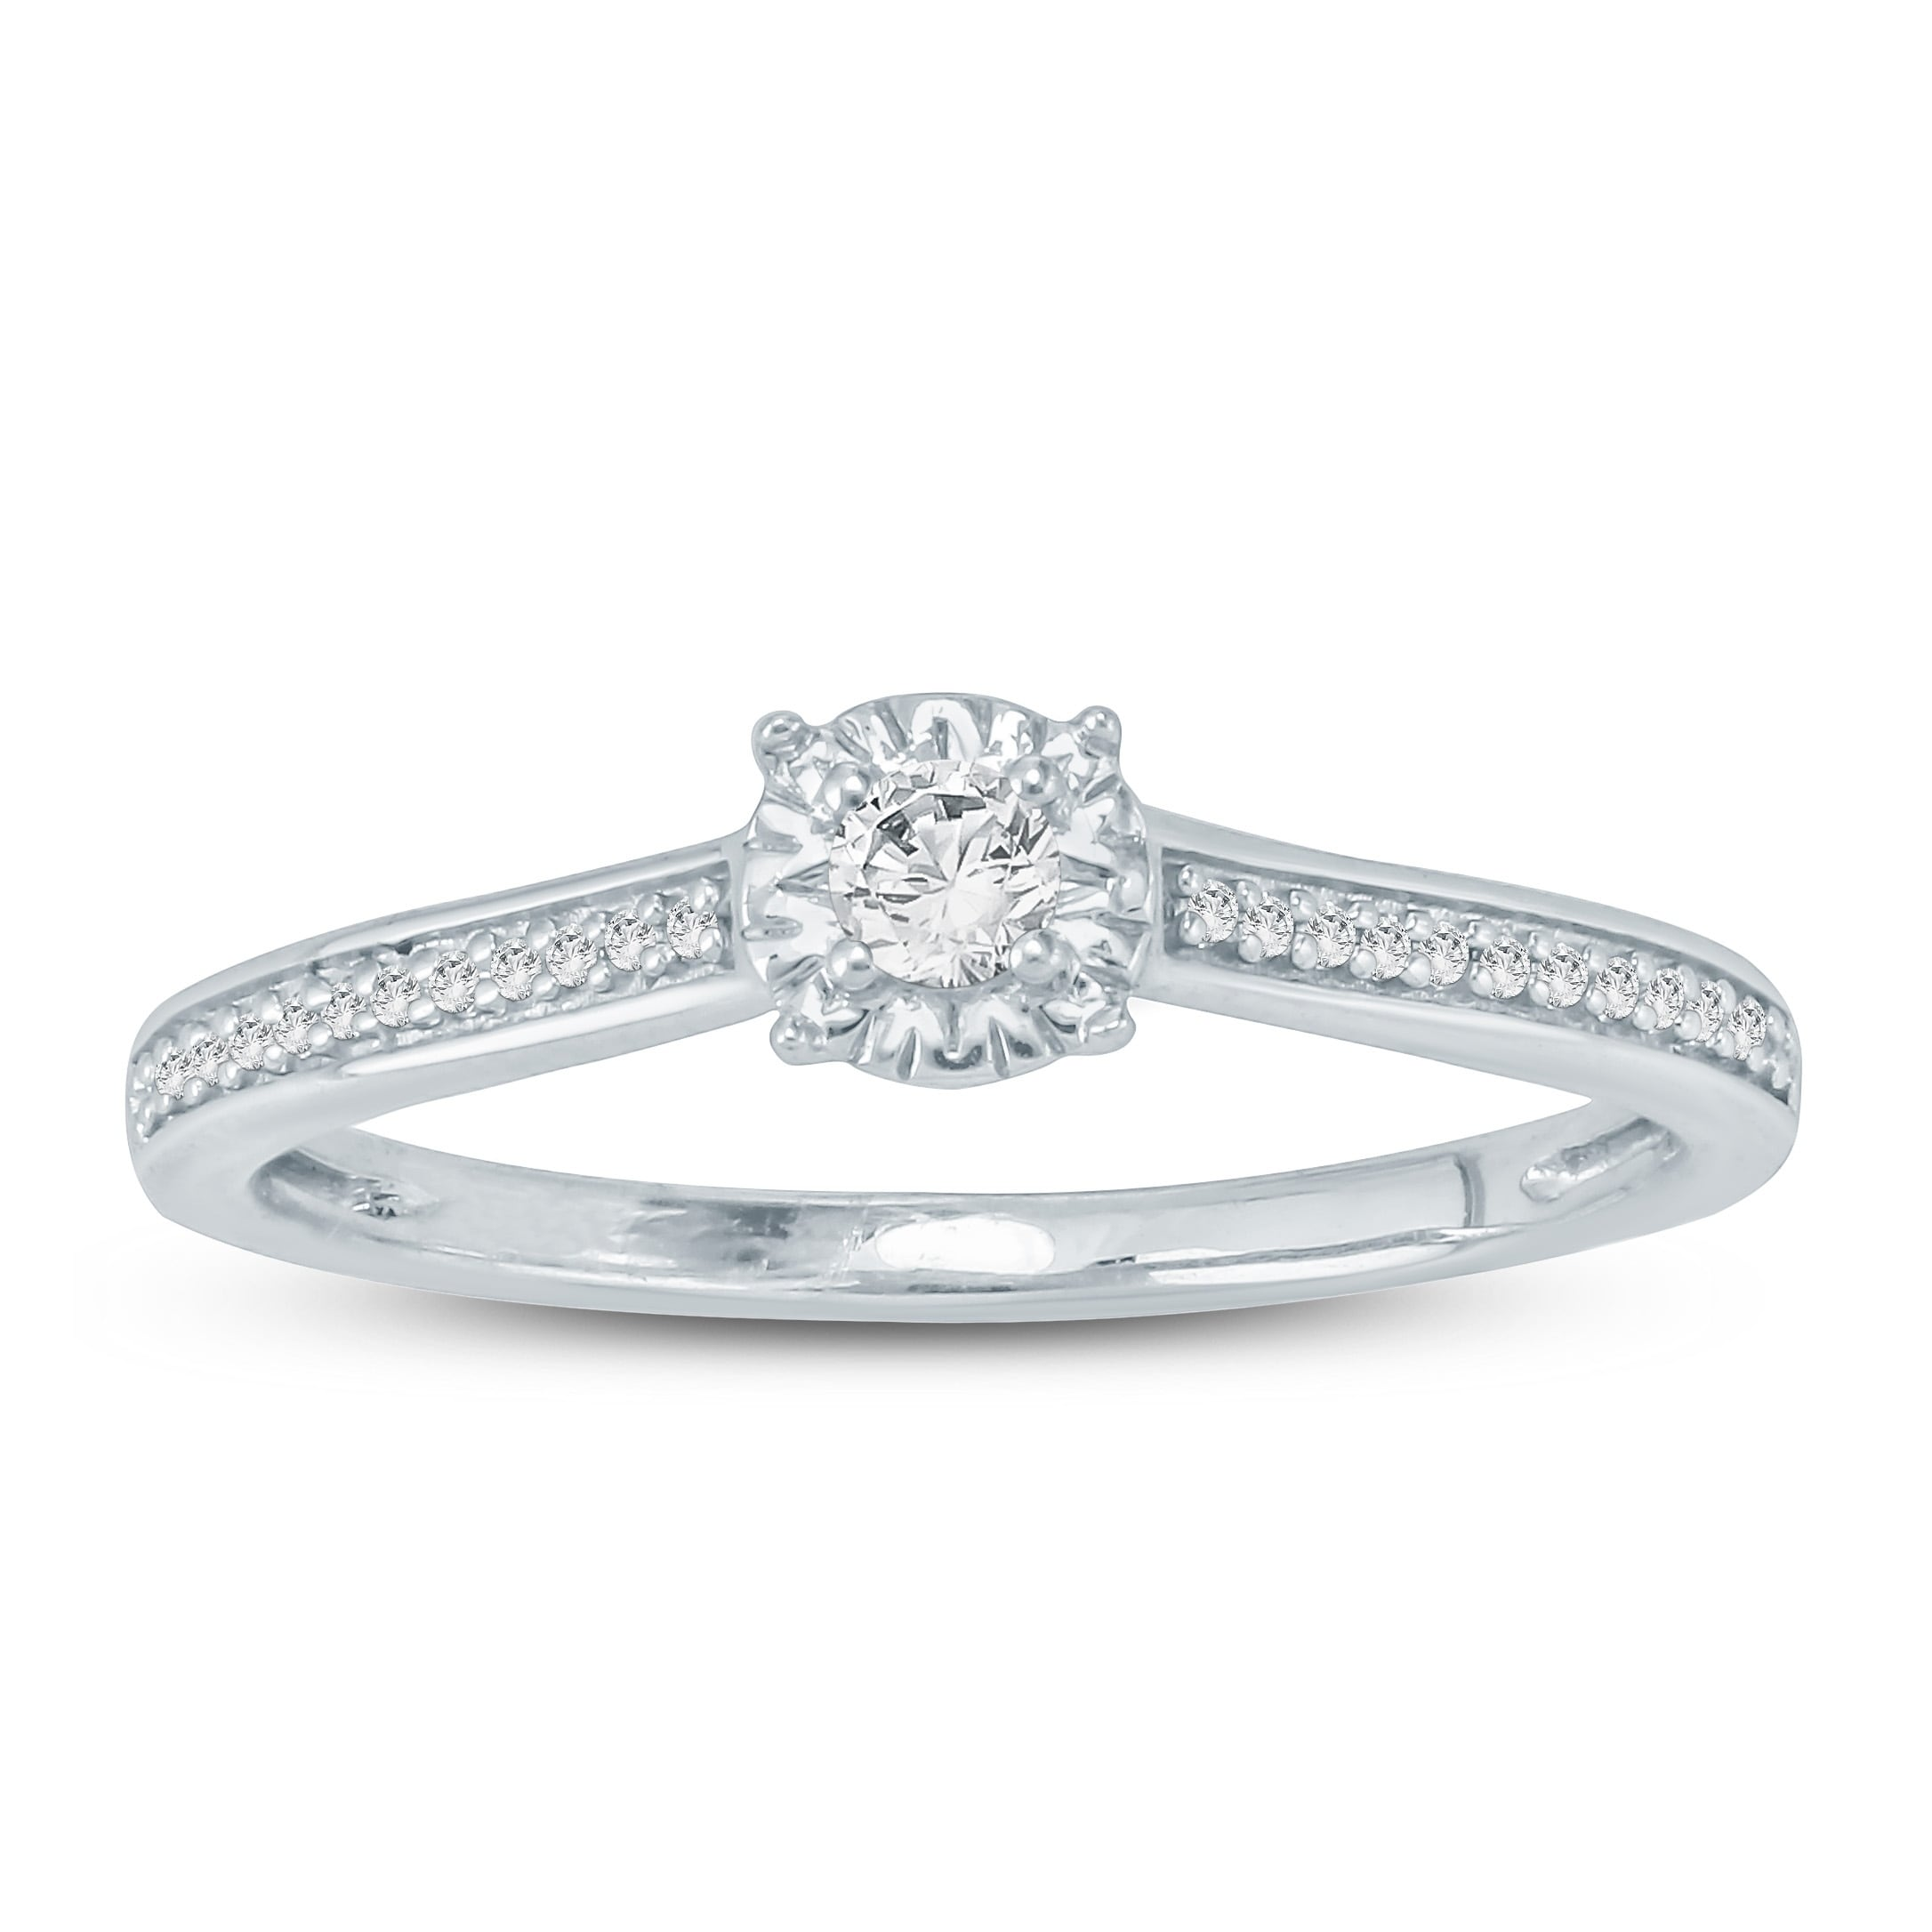 8c6e4e1c0dc18 Cali Trove 1/6 Ct Round Diamond Miracle Plate Promise Ring In 10Kt White  Gold.